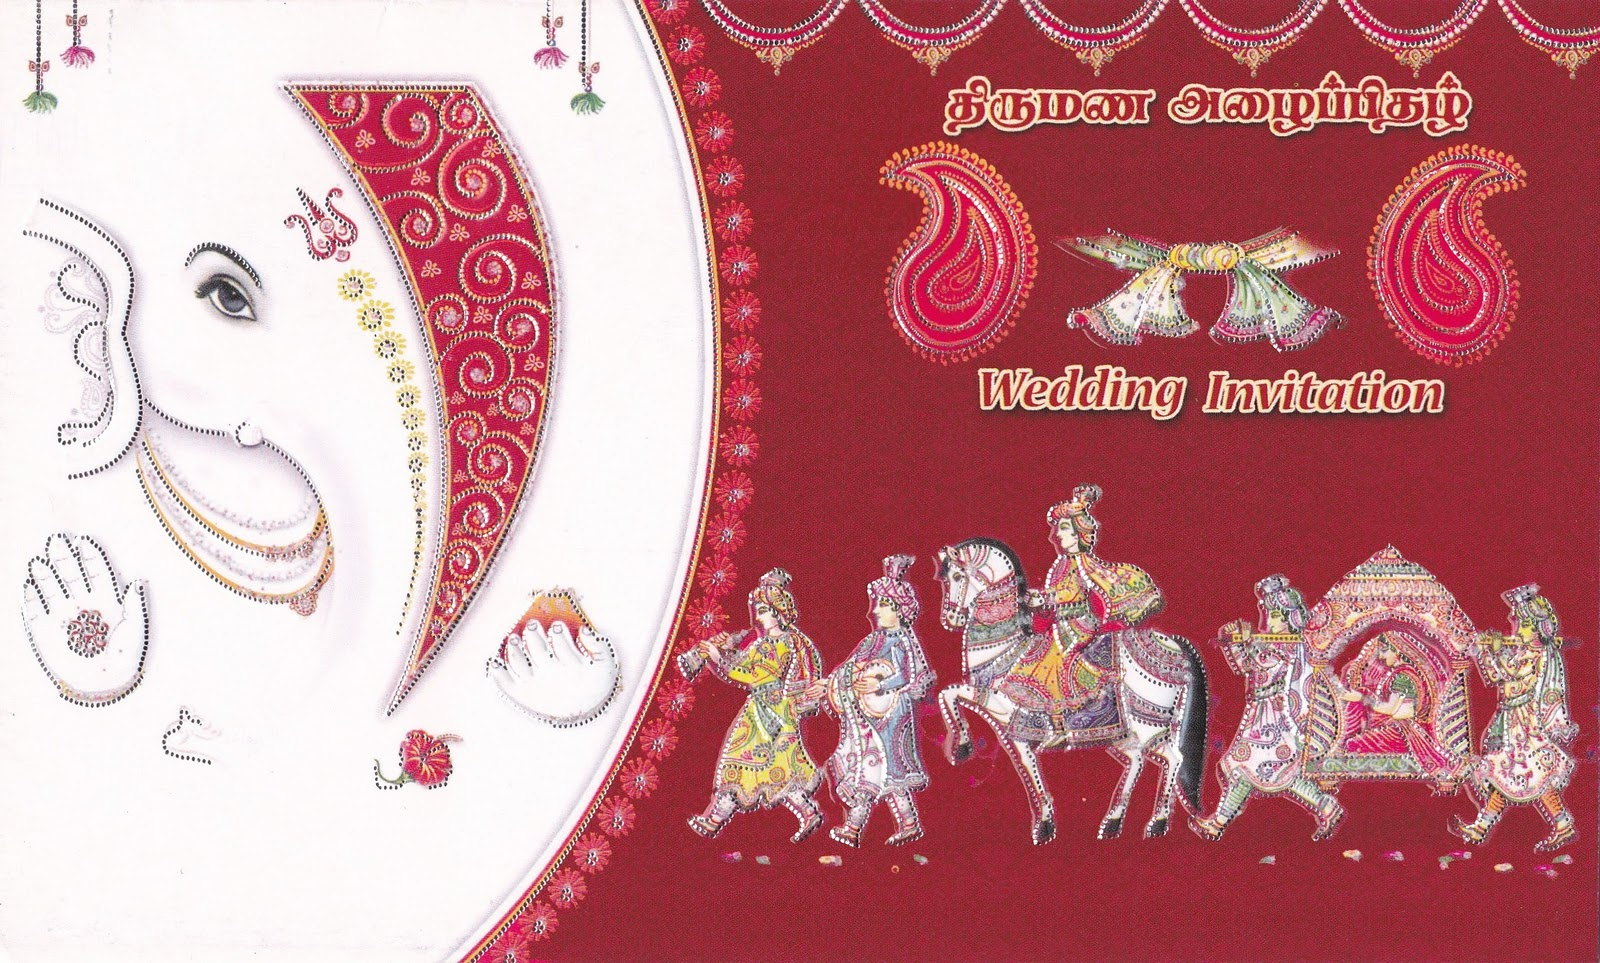 of Indian Wedding Cards is